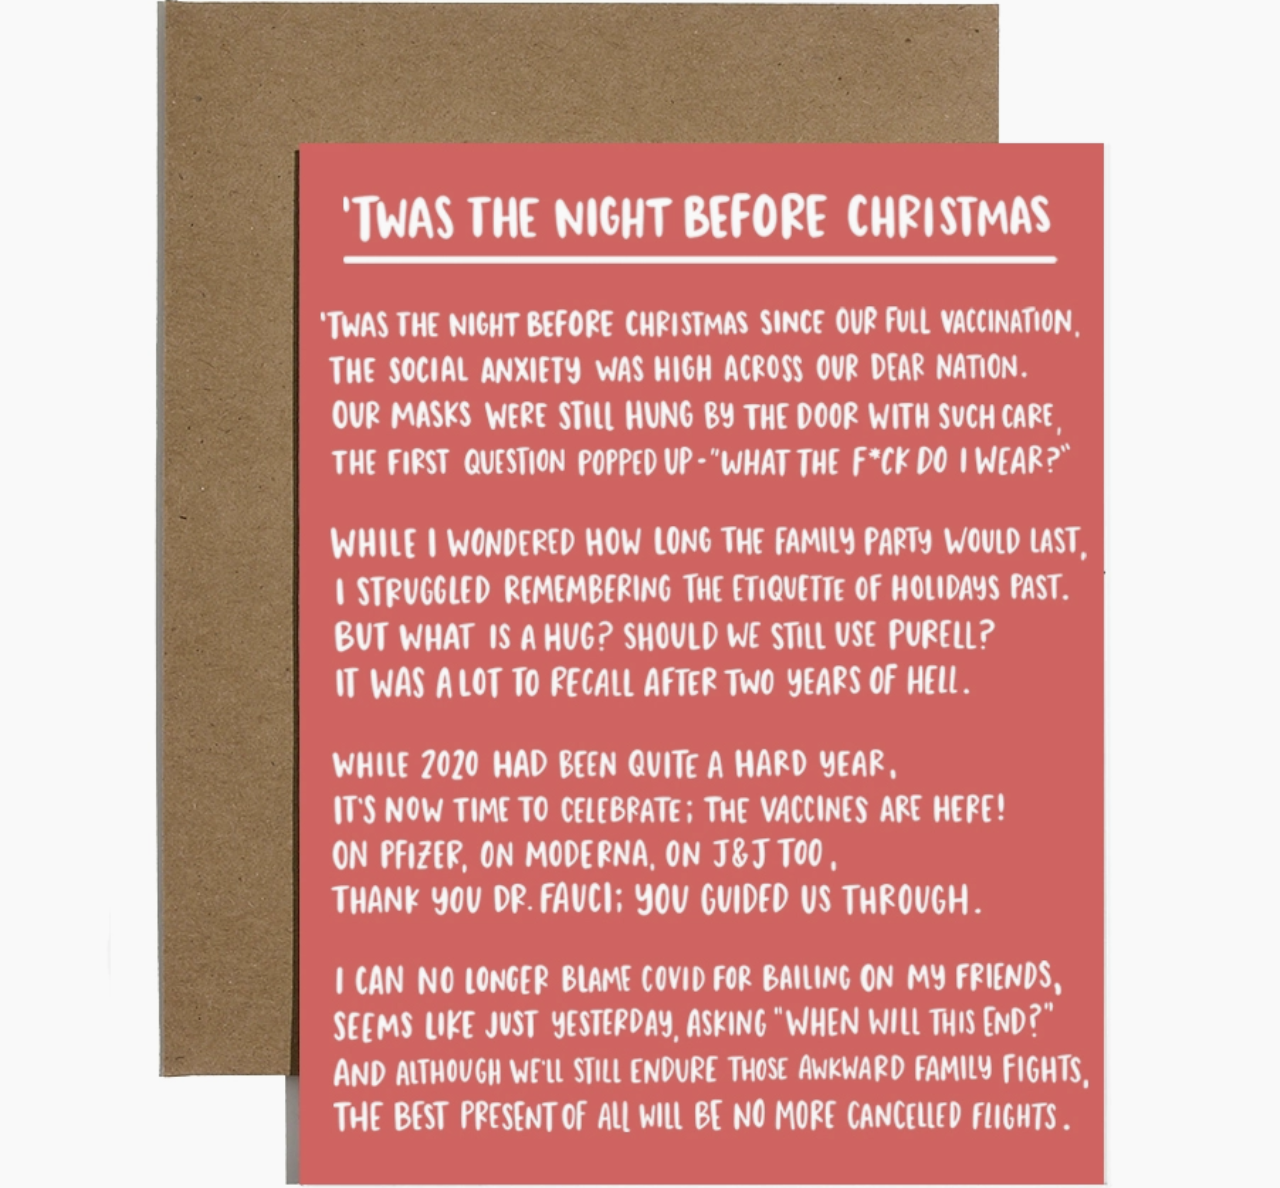 Brittany Paige 'Twas The Night Before COVID Christmas Card